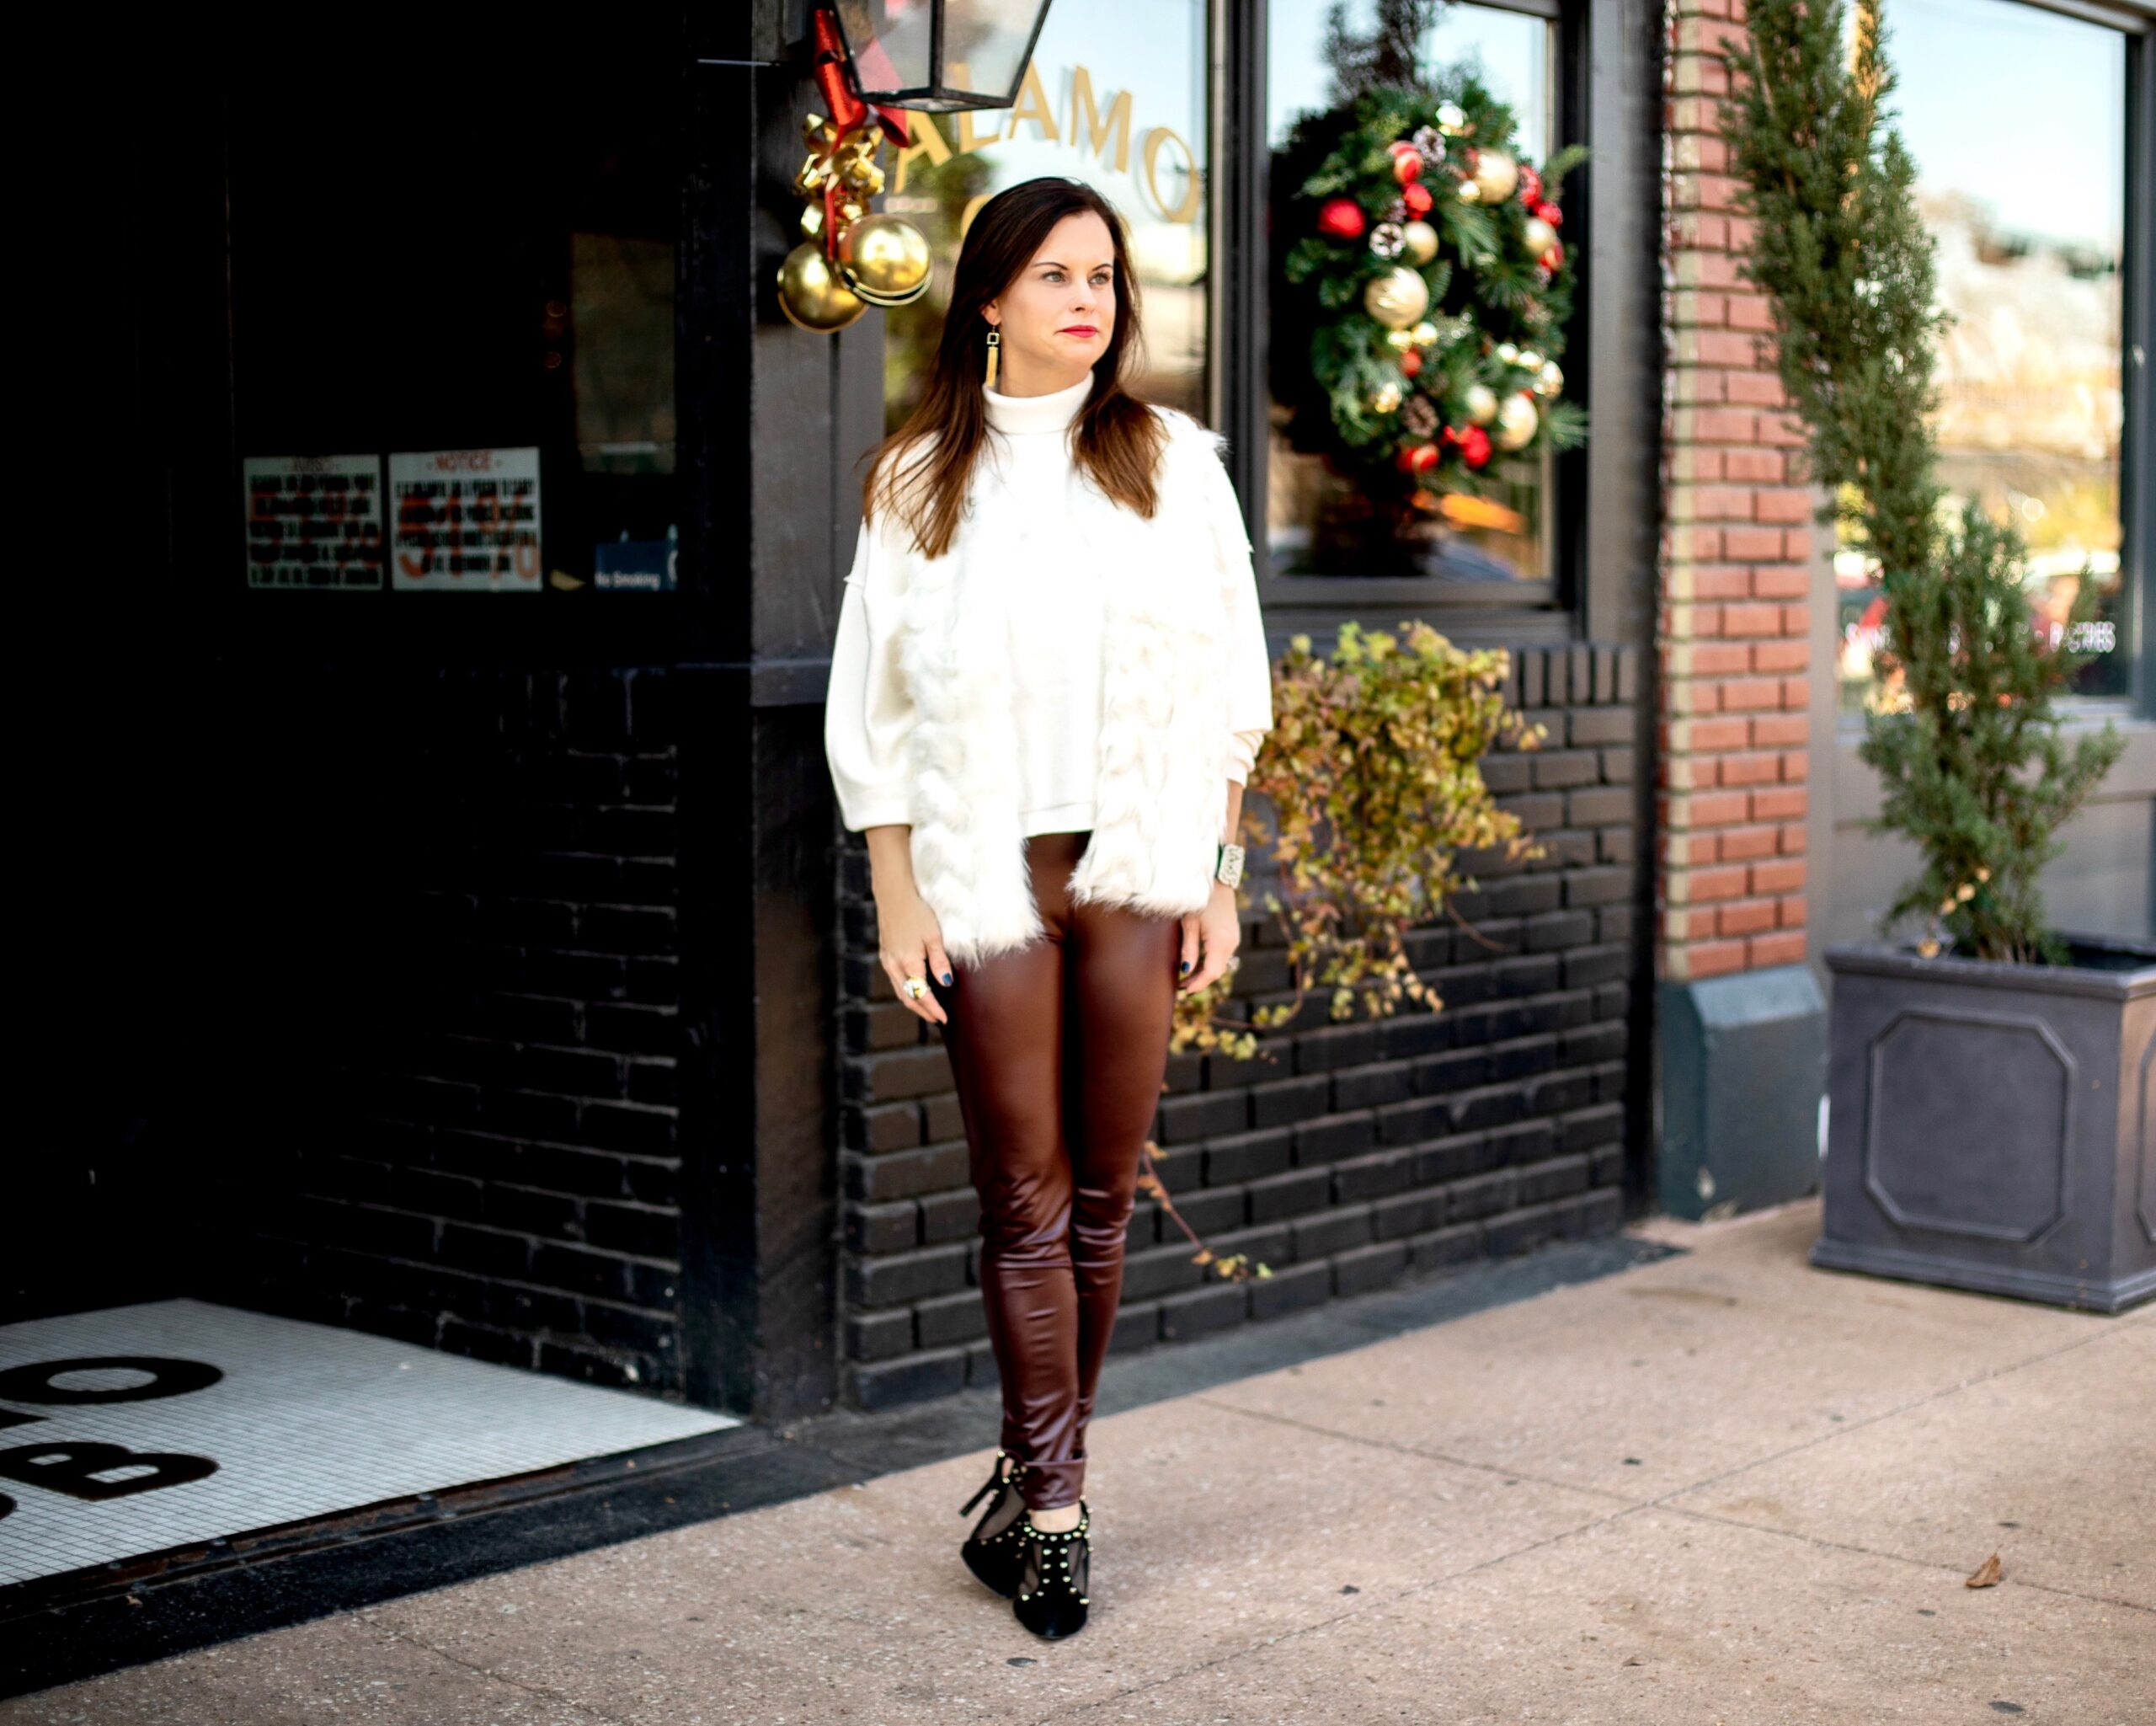 Styling Booties with Kathy Fielder Design | Life | Style